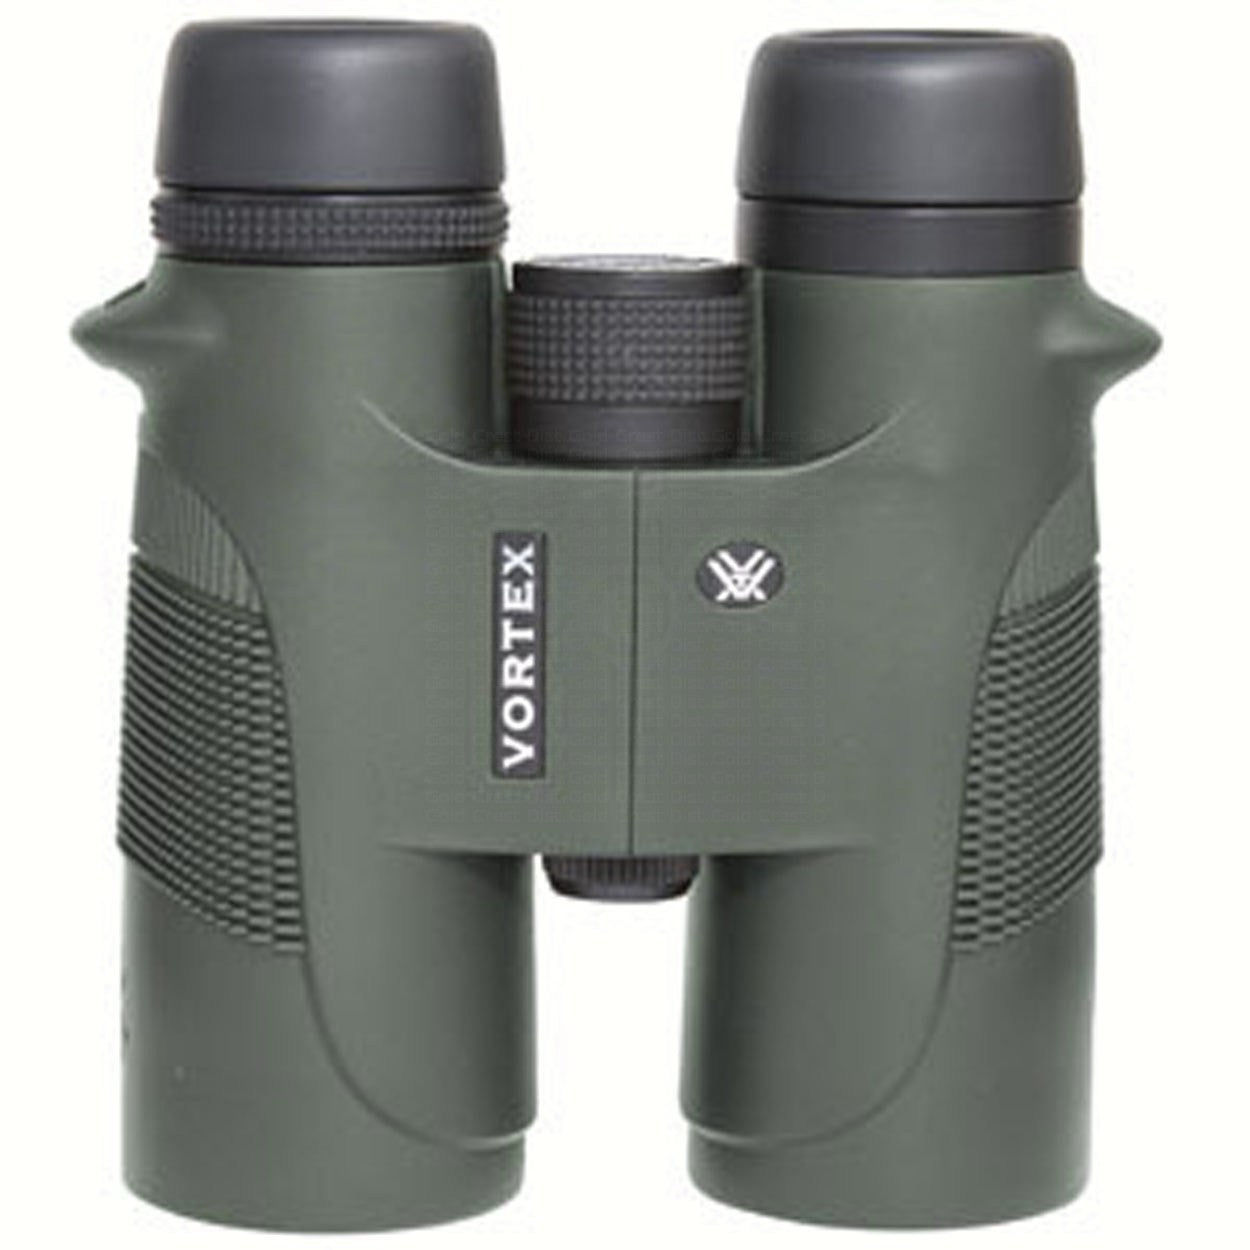 New Diamondback 8 x 42 Binocular